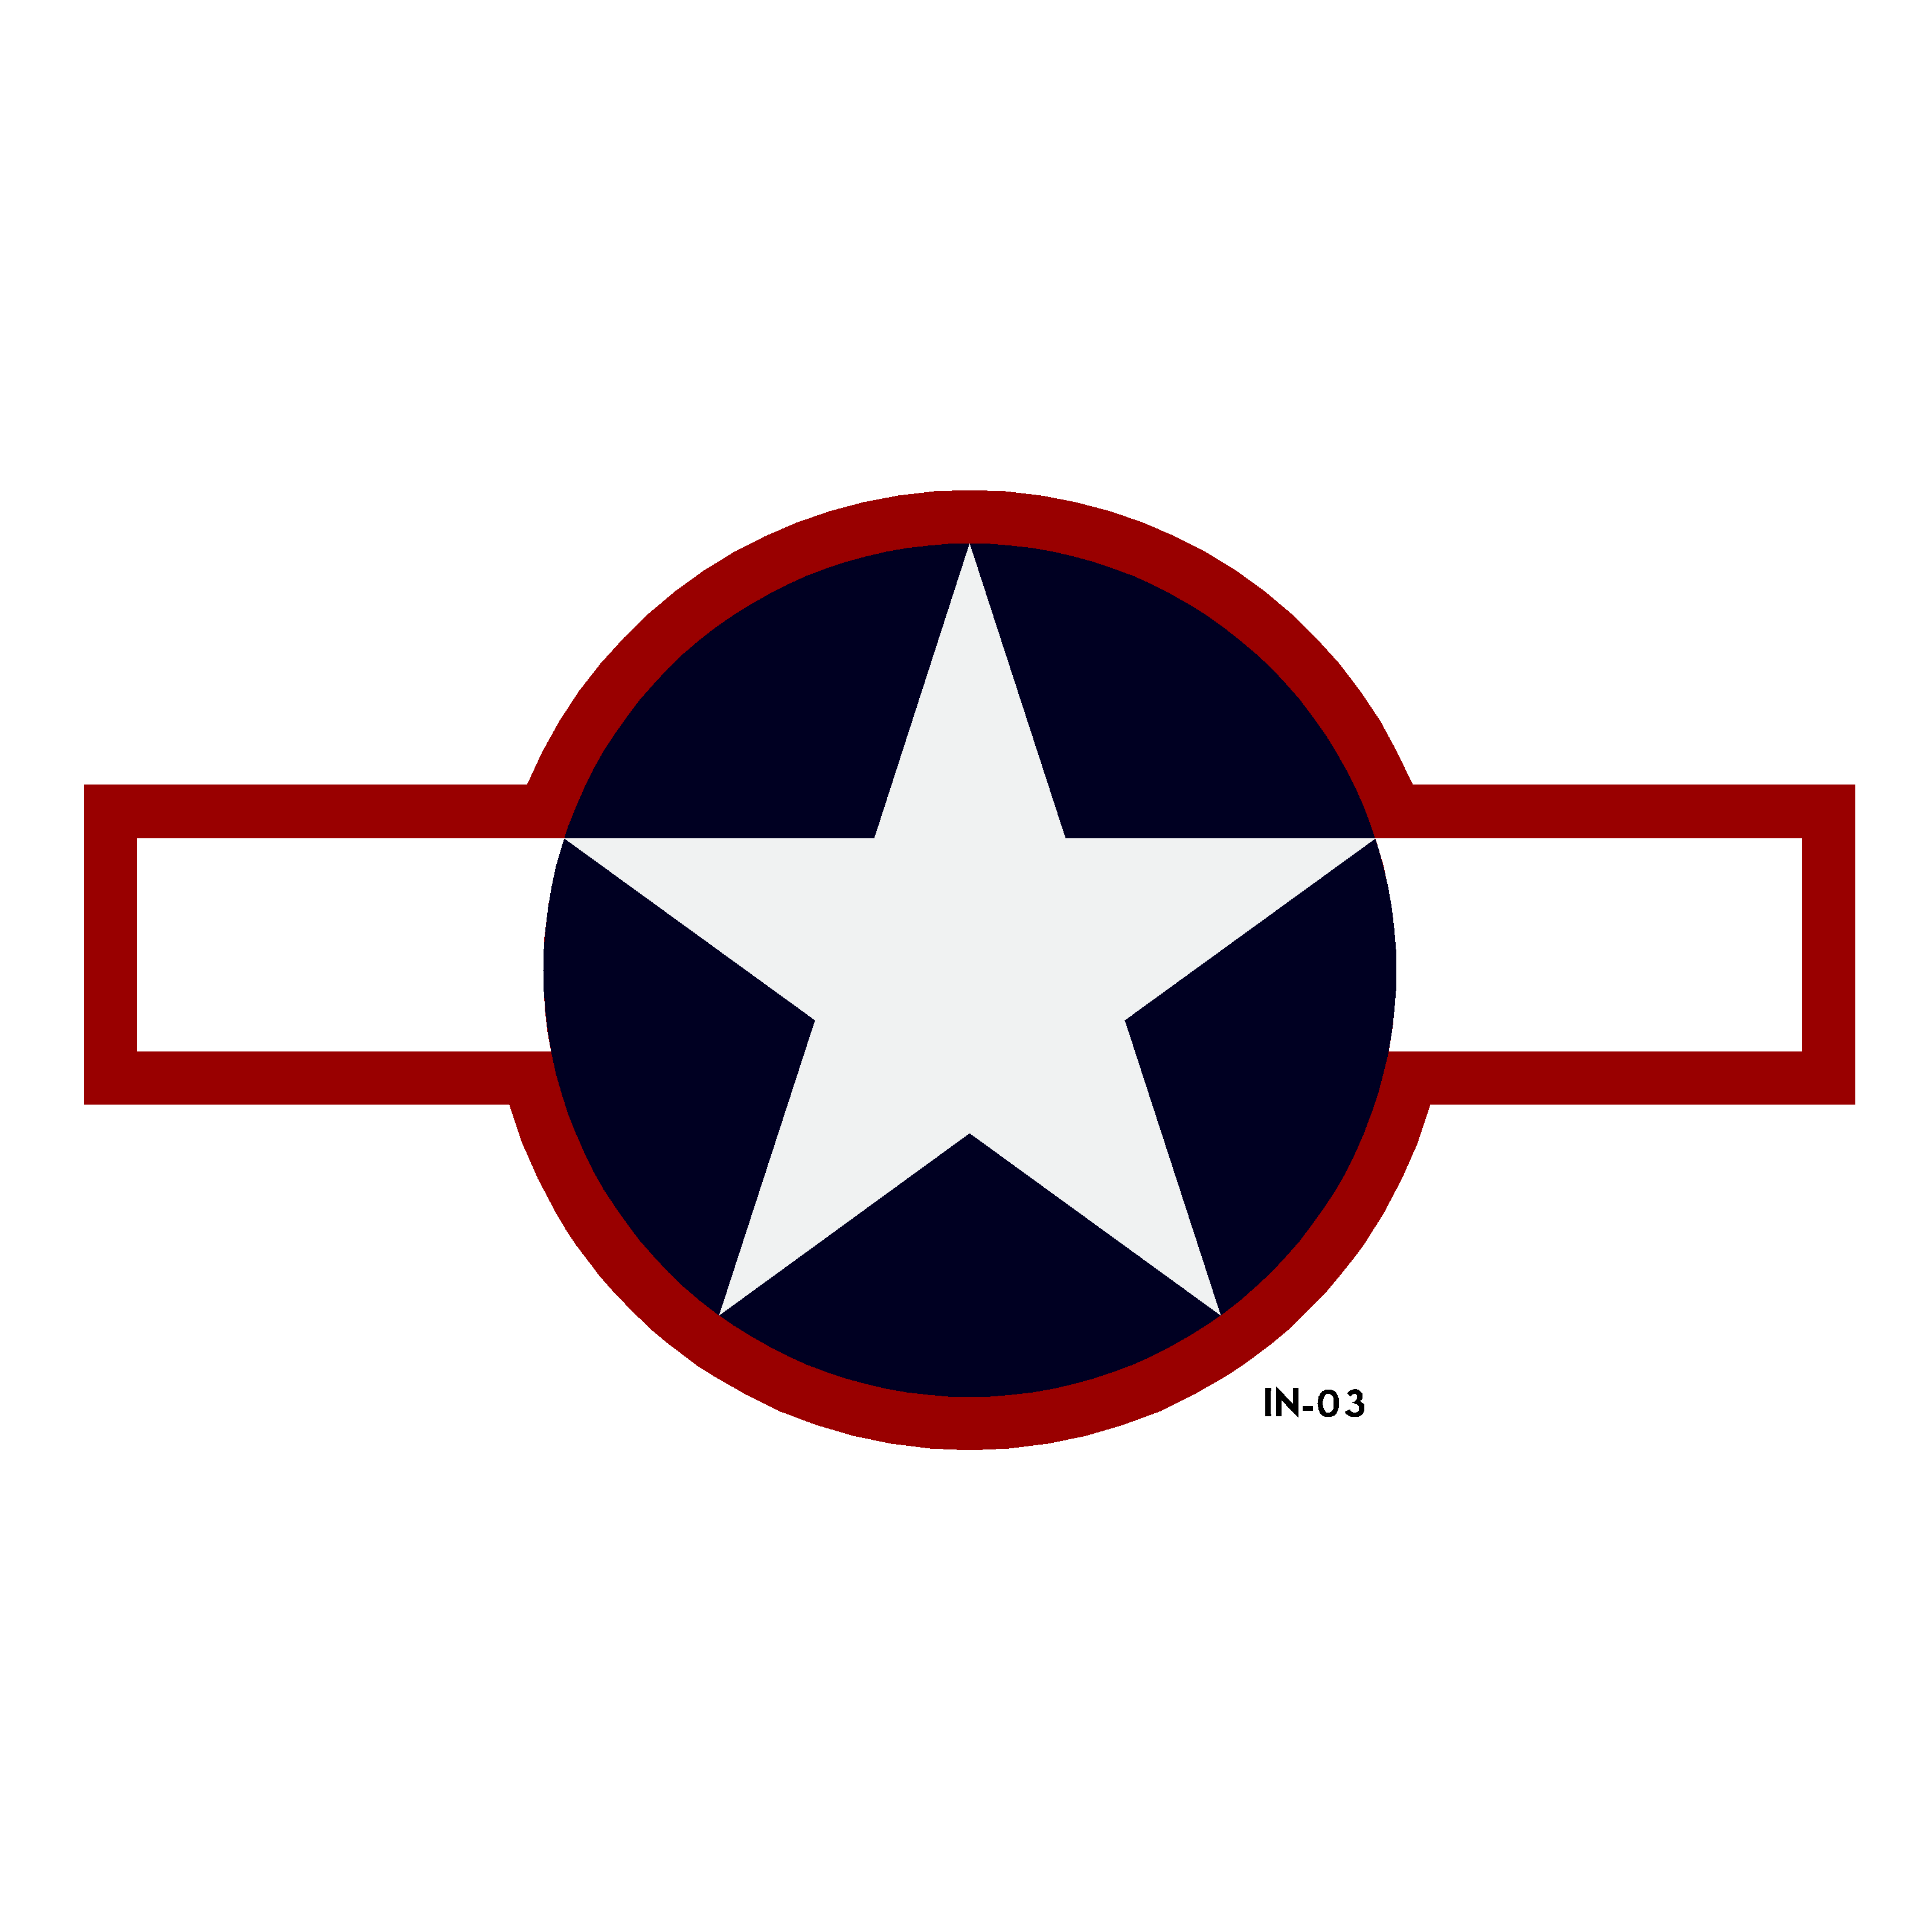 U.S. Army Air Force National Star and Bars Insignia - Spec. AN-I-9a